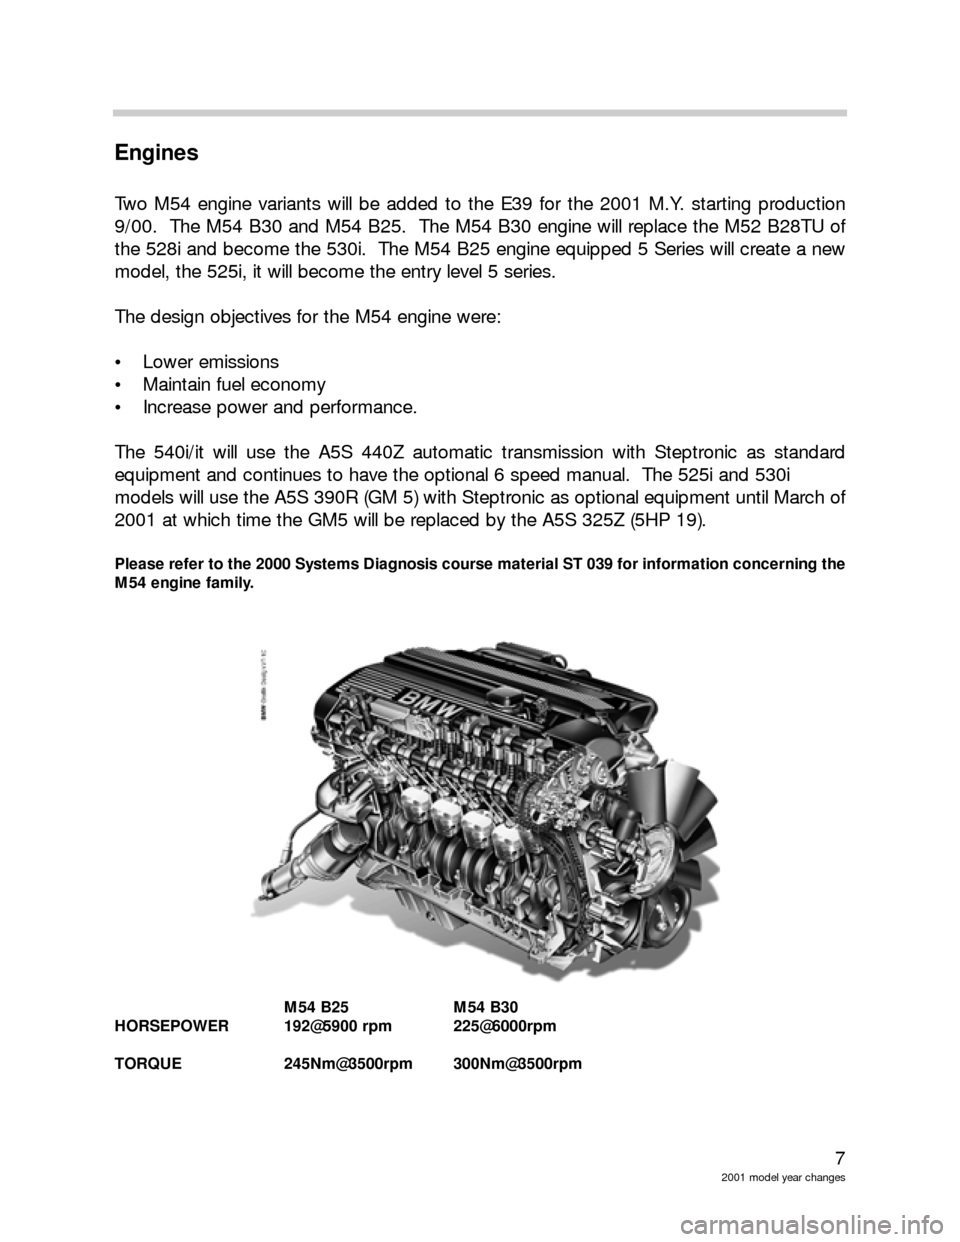 BMW 3 SERIES 2003 E46 Model Yar Changes, Page 7